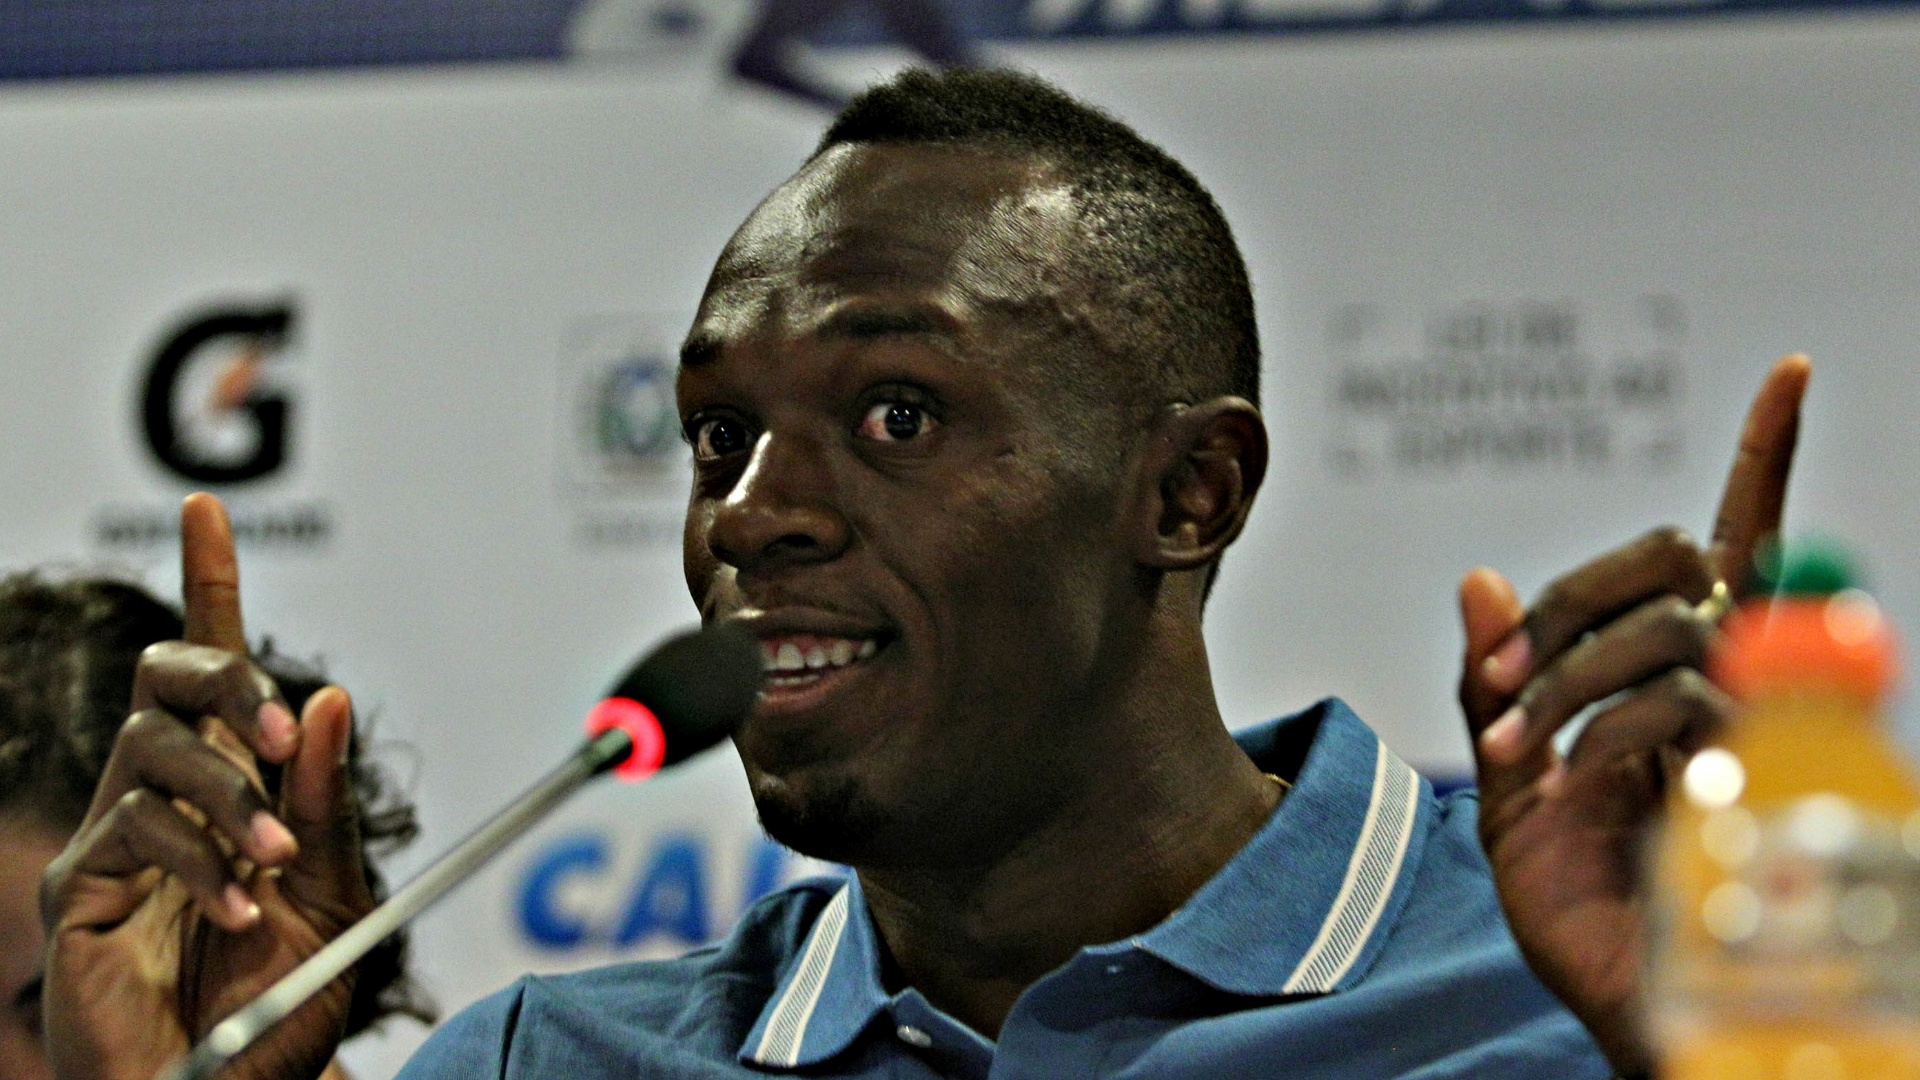 28.mar.2013 - Usain Bolt sorri durante coletiva de imprensa no Rio de Janeiro